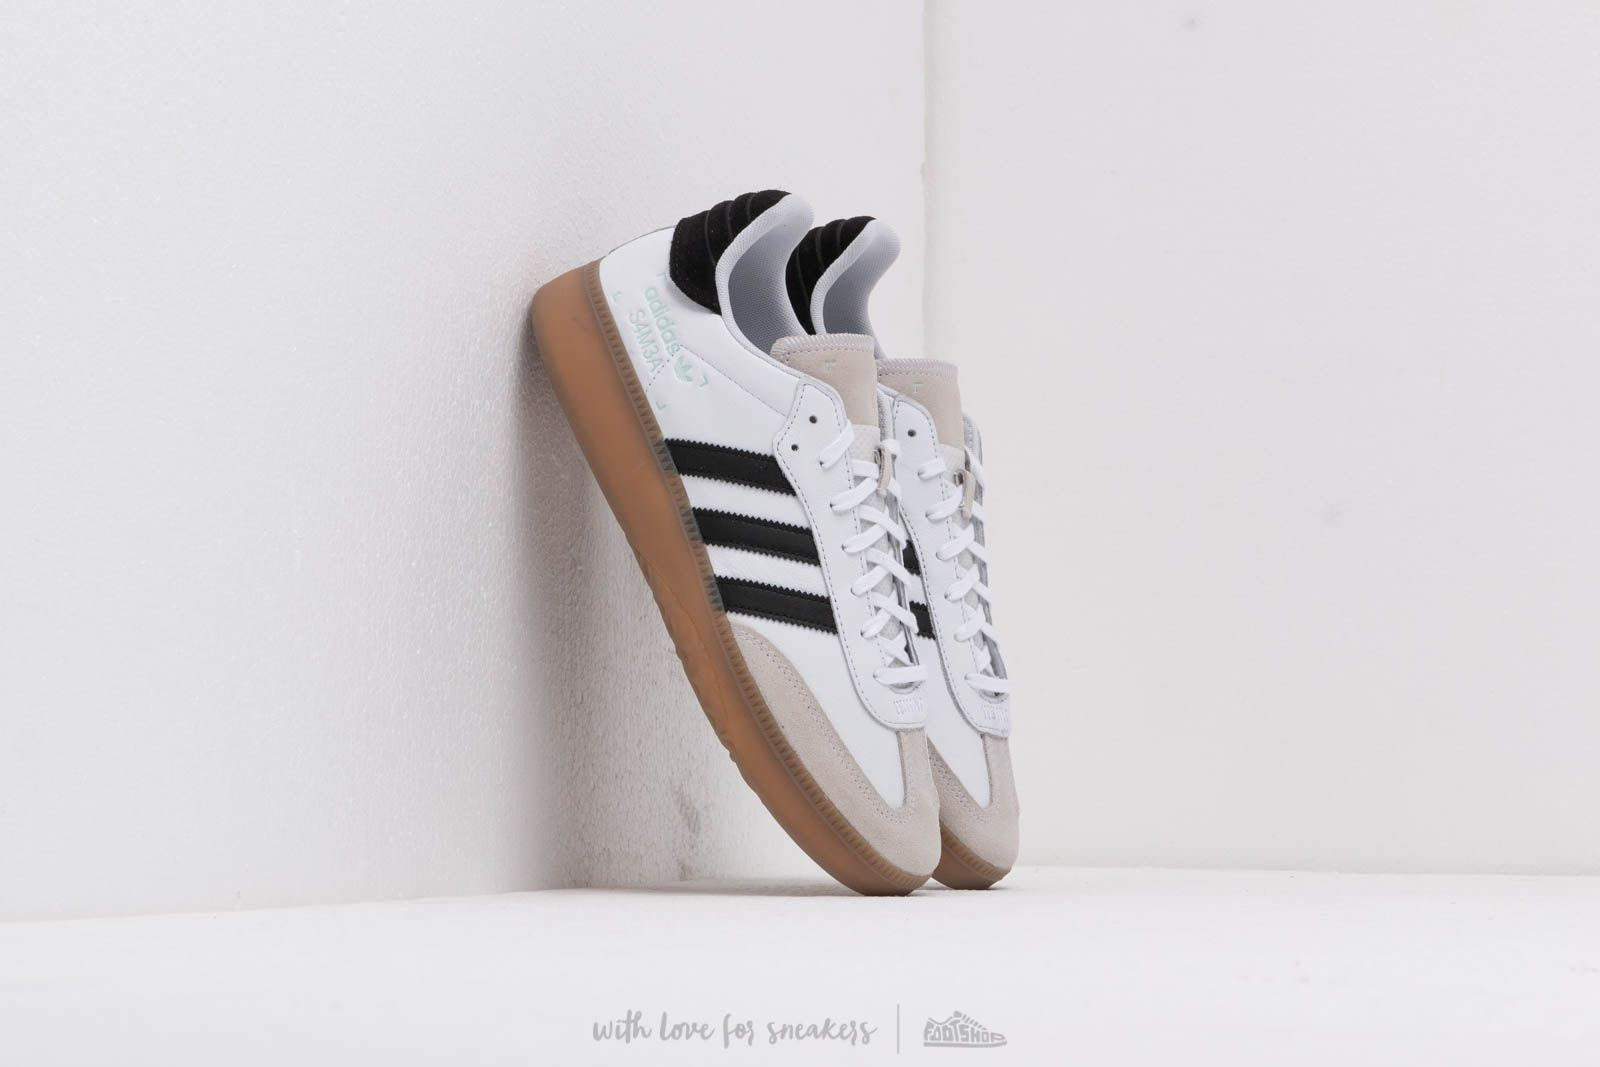 f675a333c4ff85 adidas Samba Rm Ftw White  Core Black  Clemin at a great price 125 €